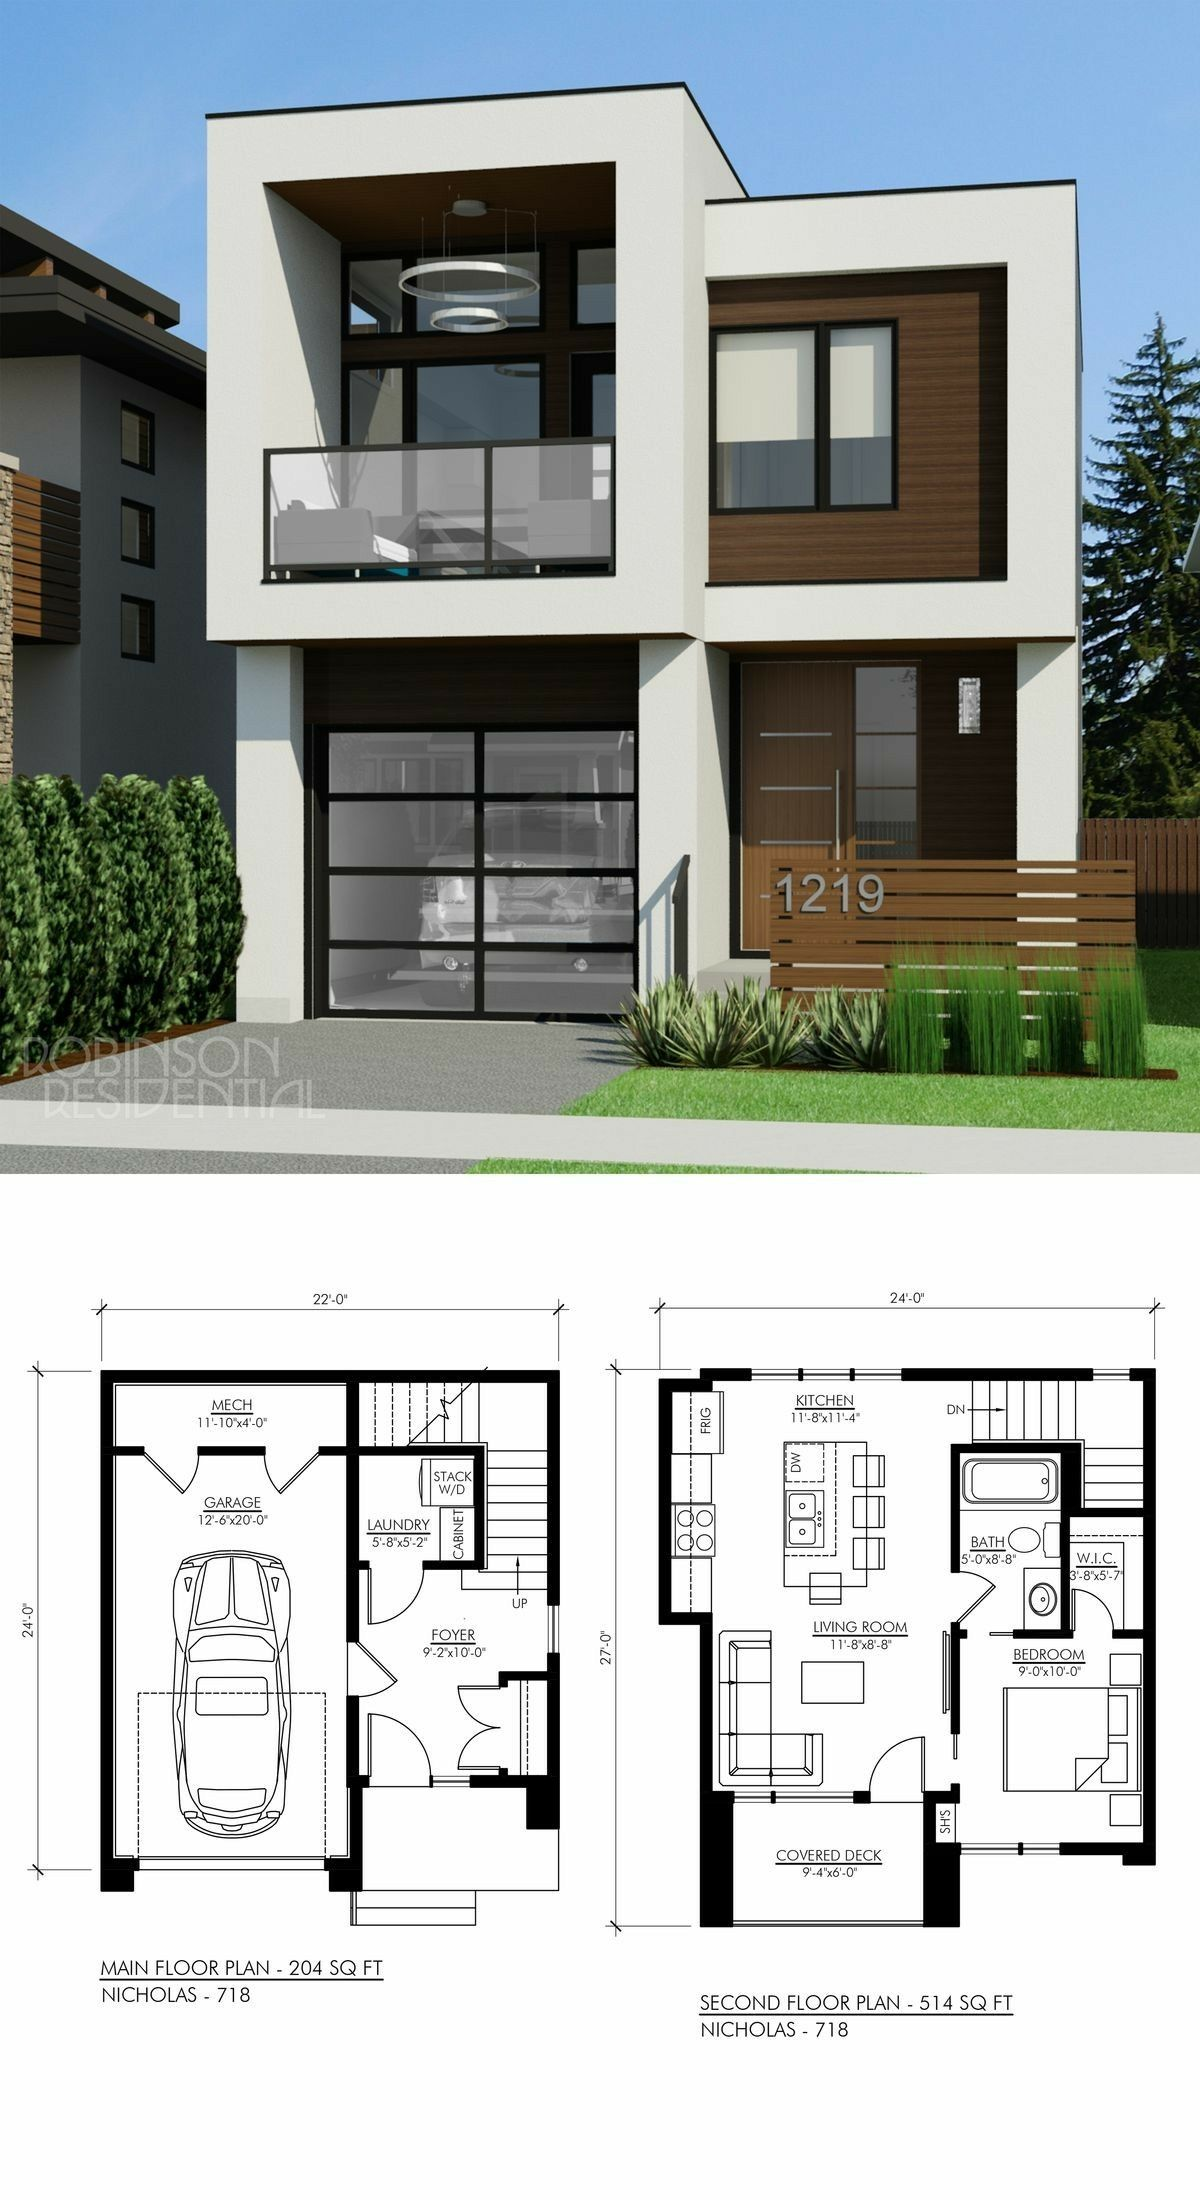 Pin By Ivan Forero On Detalhes House Designs Exterior Contemporary House Plans Minimalist House Design